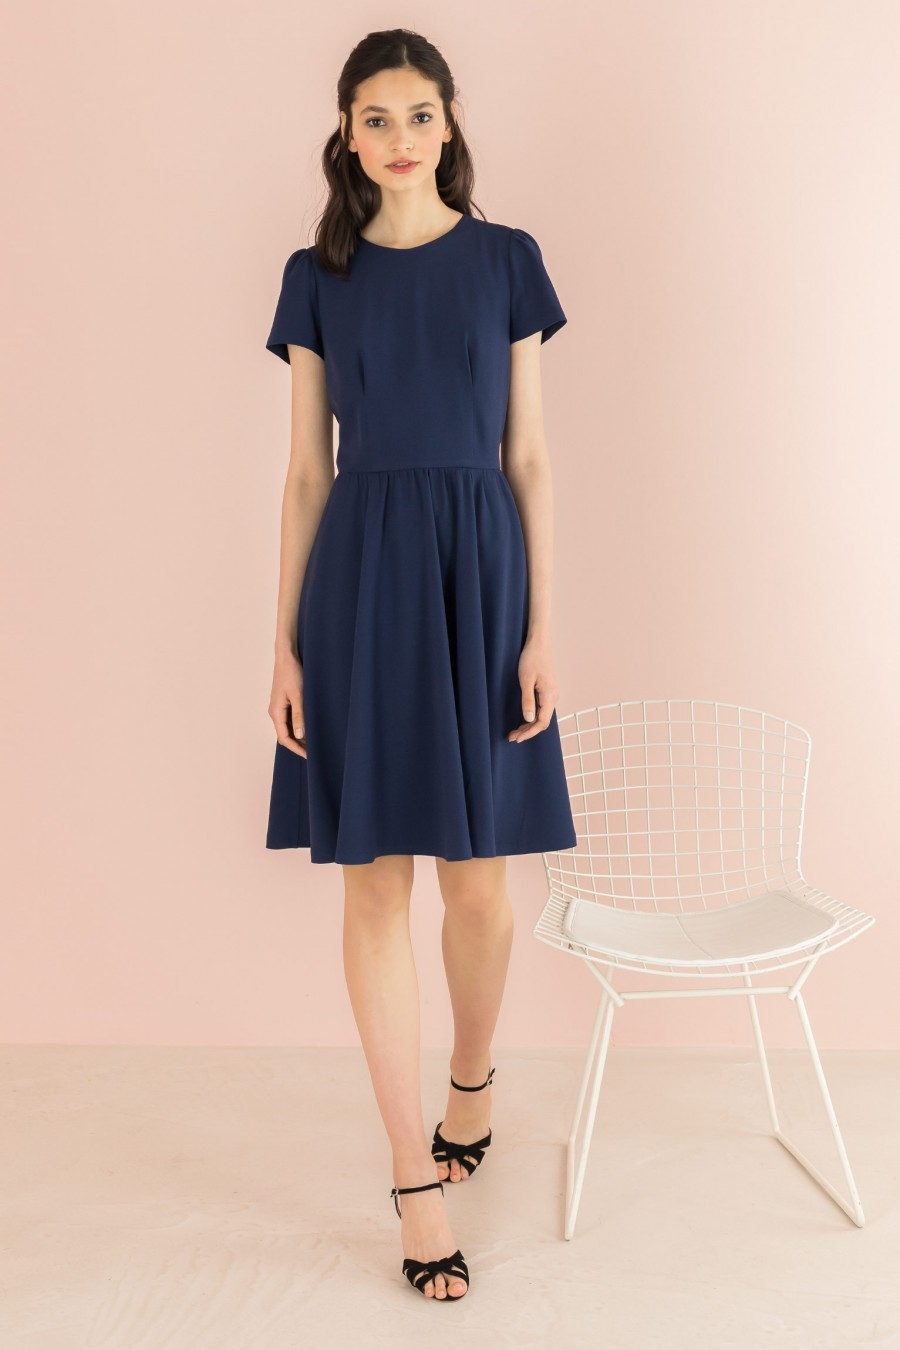 blue dress with gathered skirt and short sleeves